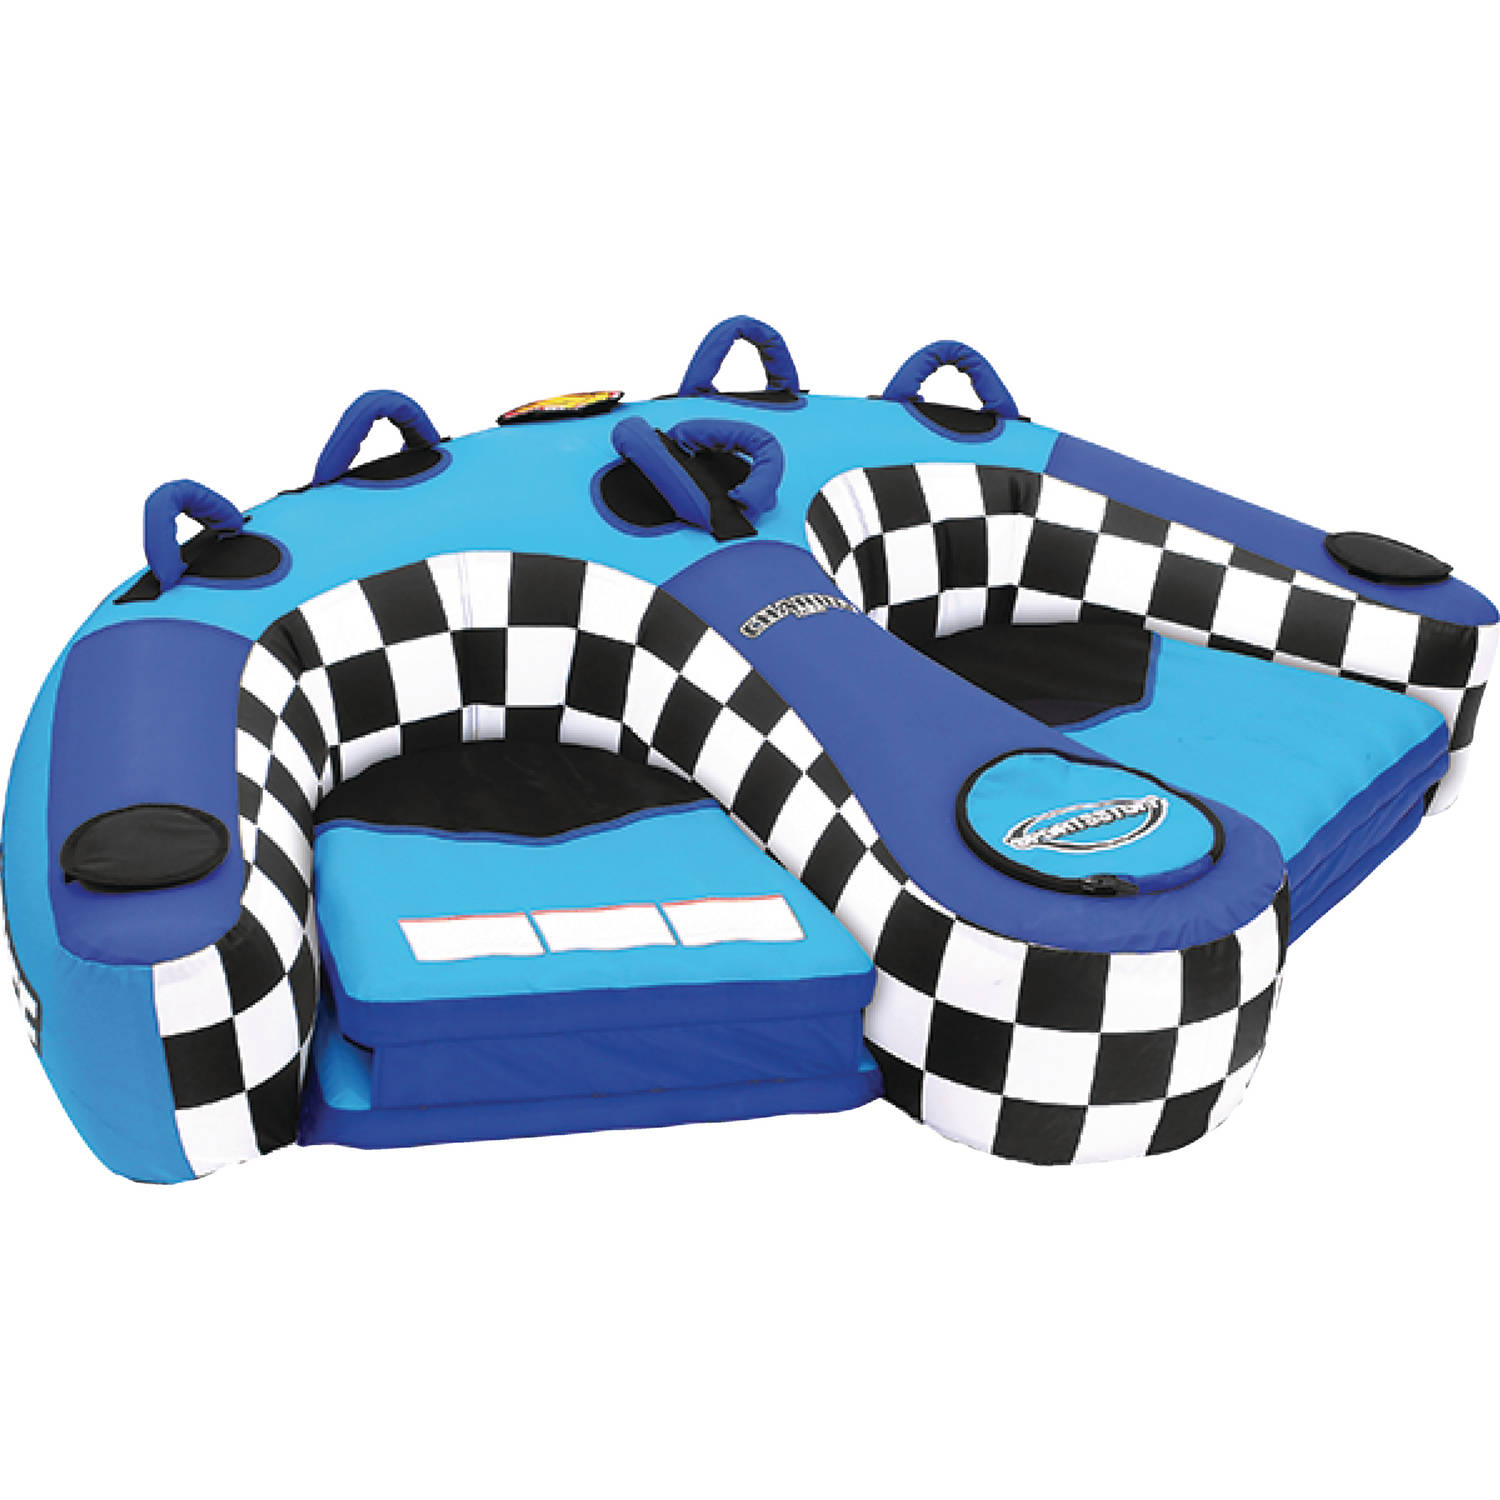 Sportsstuff 53-1982 Chariot Duo Inflatable Towable and Lounger, 2 Rider by Kwik Tek